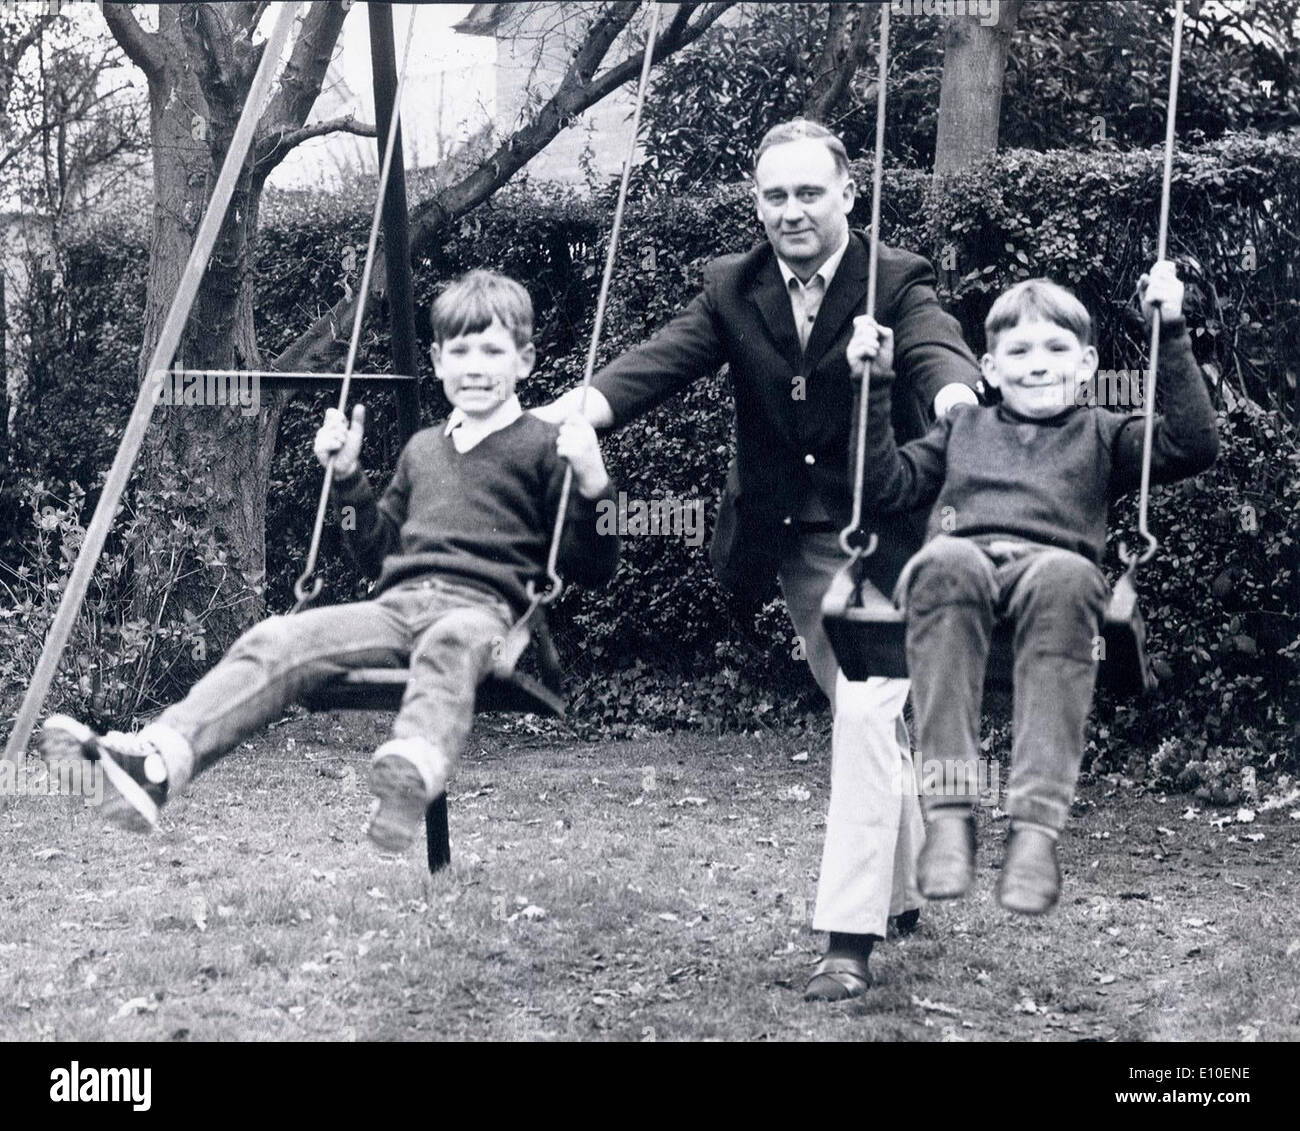 Aug 08, 1972 - Belfast, Northern Ireland, United Kingdom - WILLIAM CRAIG at home in the backyard pushing his two Stock Photo